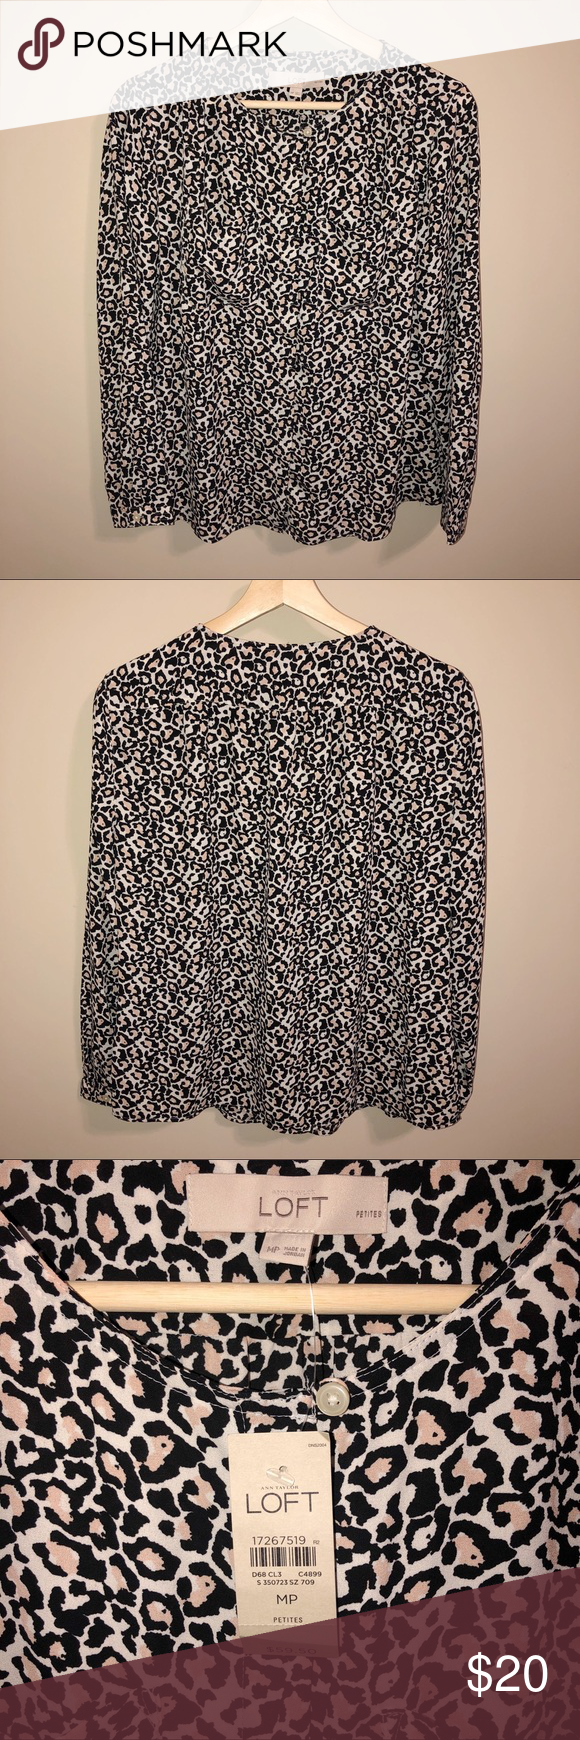 Forever 21 Leopard Print Crew Neck Sweater in TanBlack